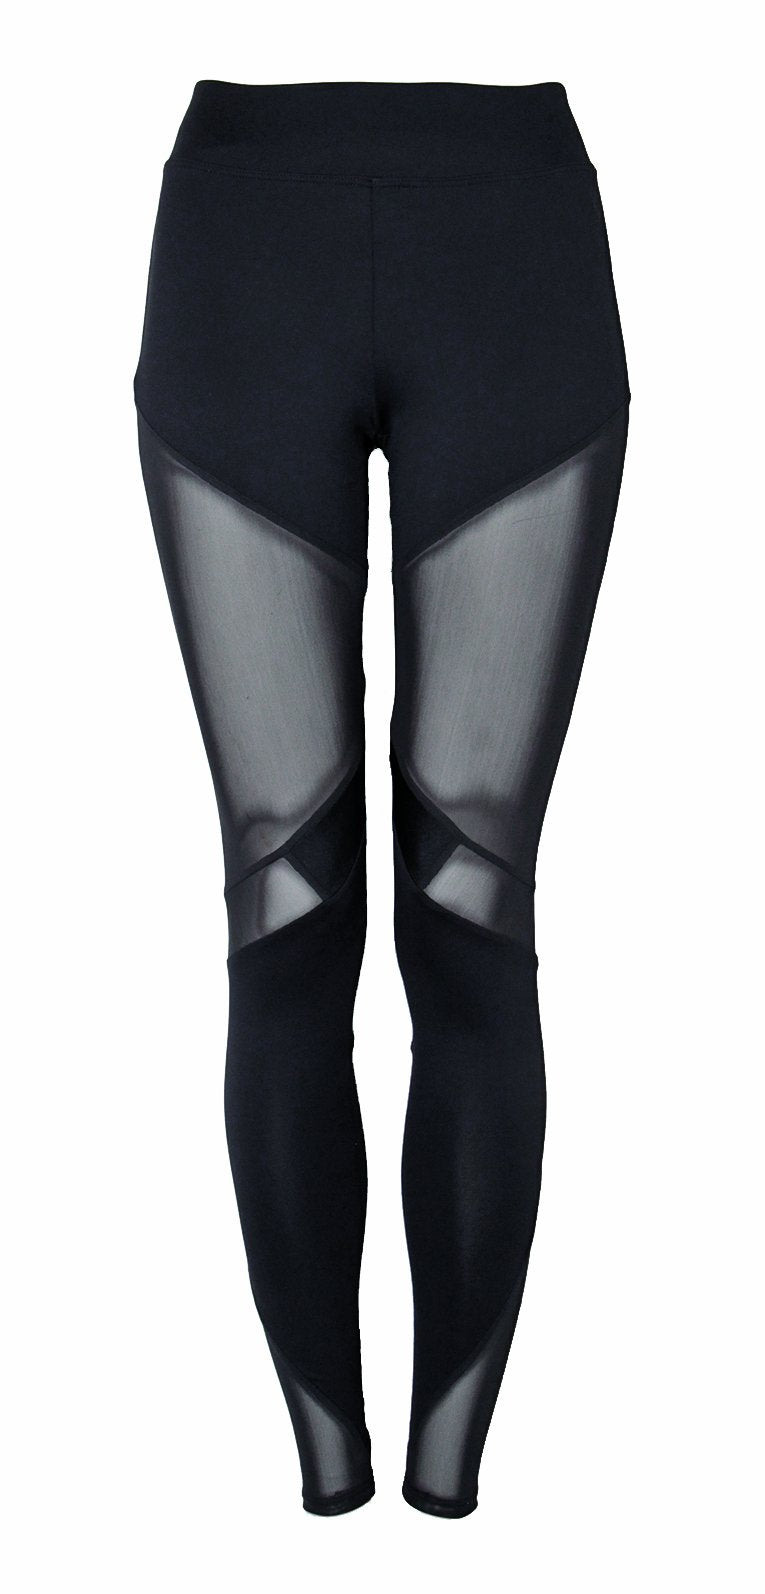 leggings tights for yoga fitness gym